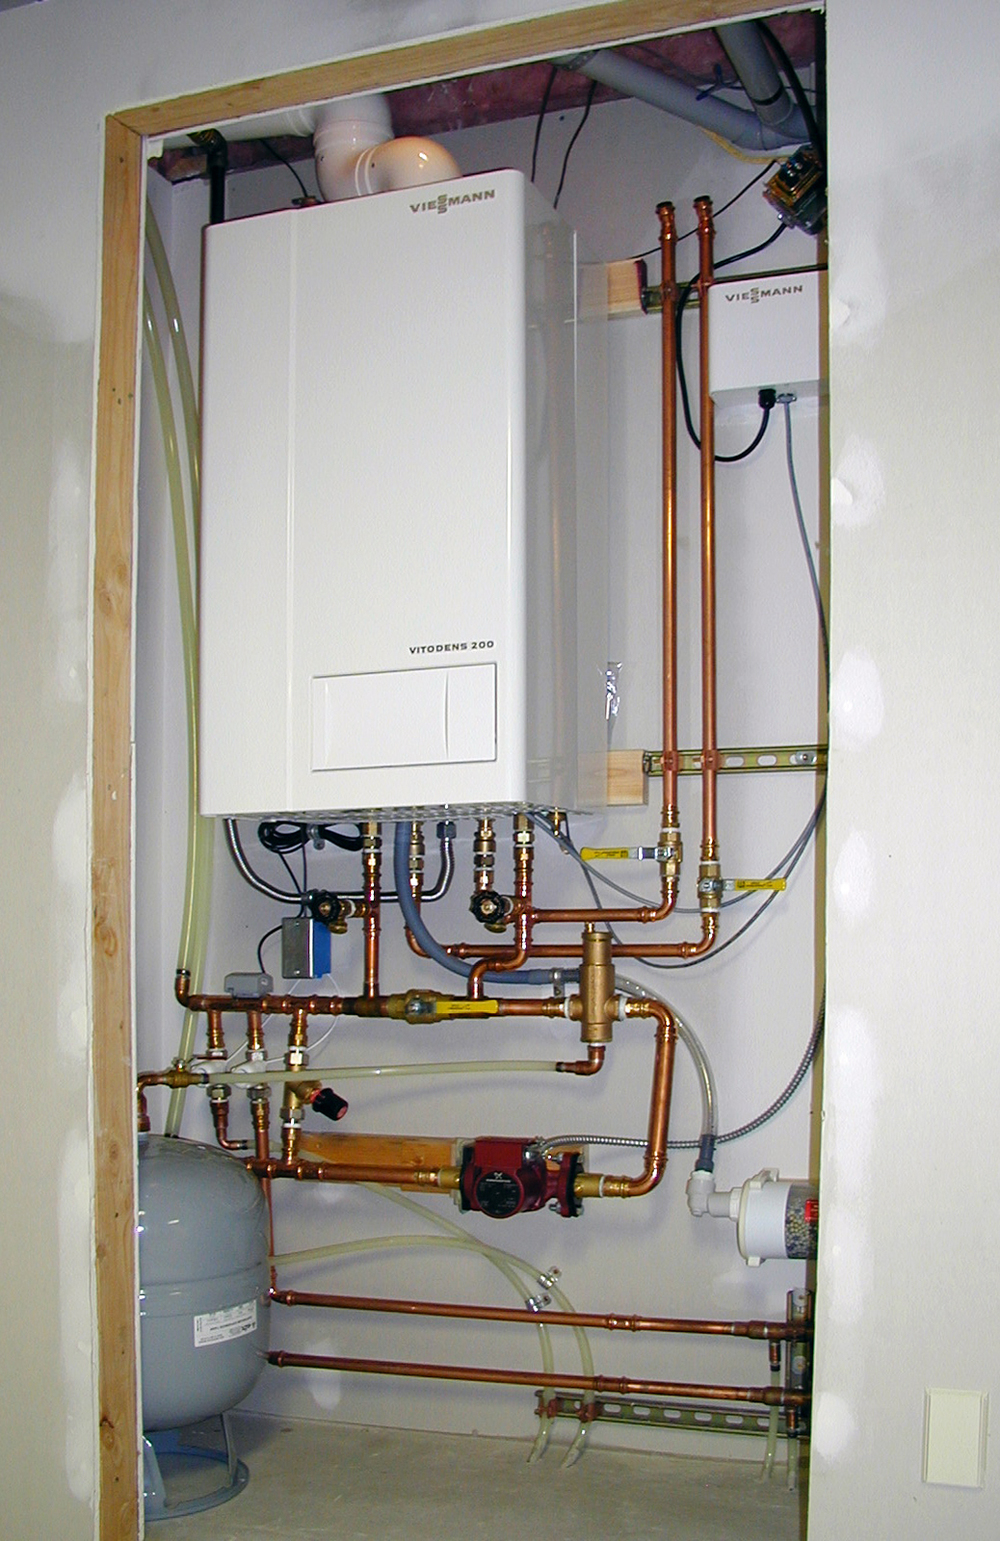 Viessmann Vitodens mechanical room by Radiant Engineering